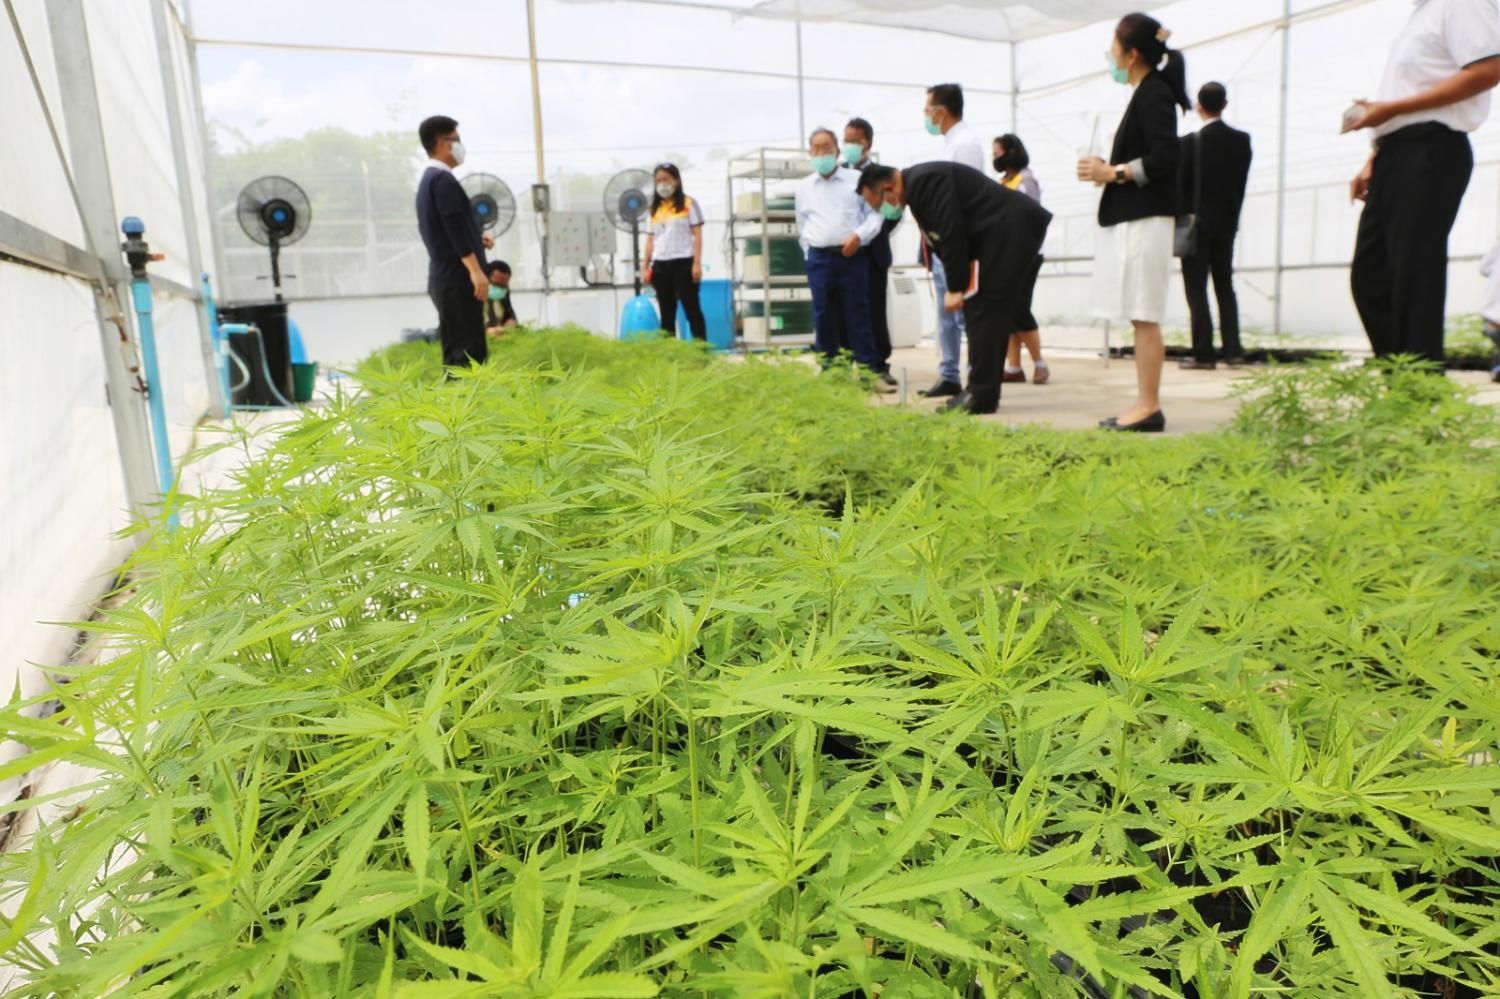 Marijuana plants are grown in a greenhouse at Suranaree University of Technology in Nakhon Ratchasima to supply a hospital in Buri Ram where the plant will be turned into medical cannabis. The university began harvesting these plants on Friday. (Photo by Prasit Tangprasert)